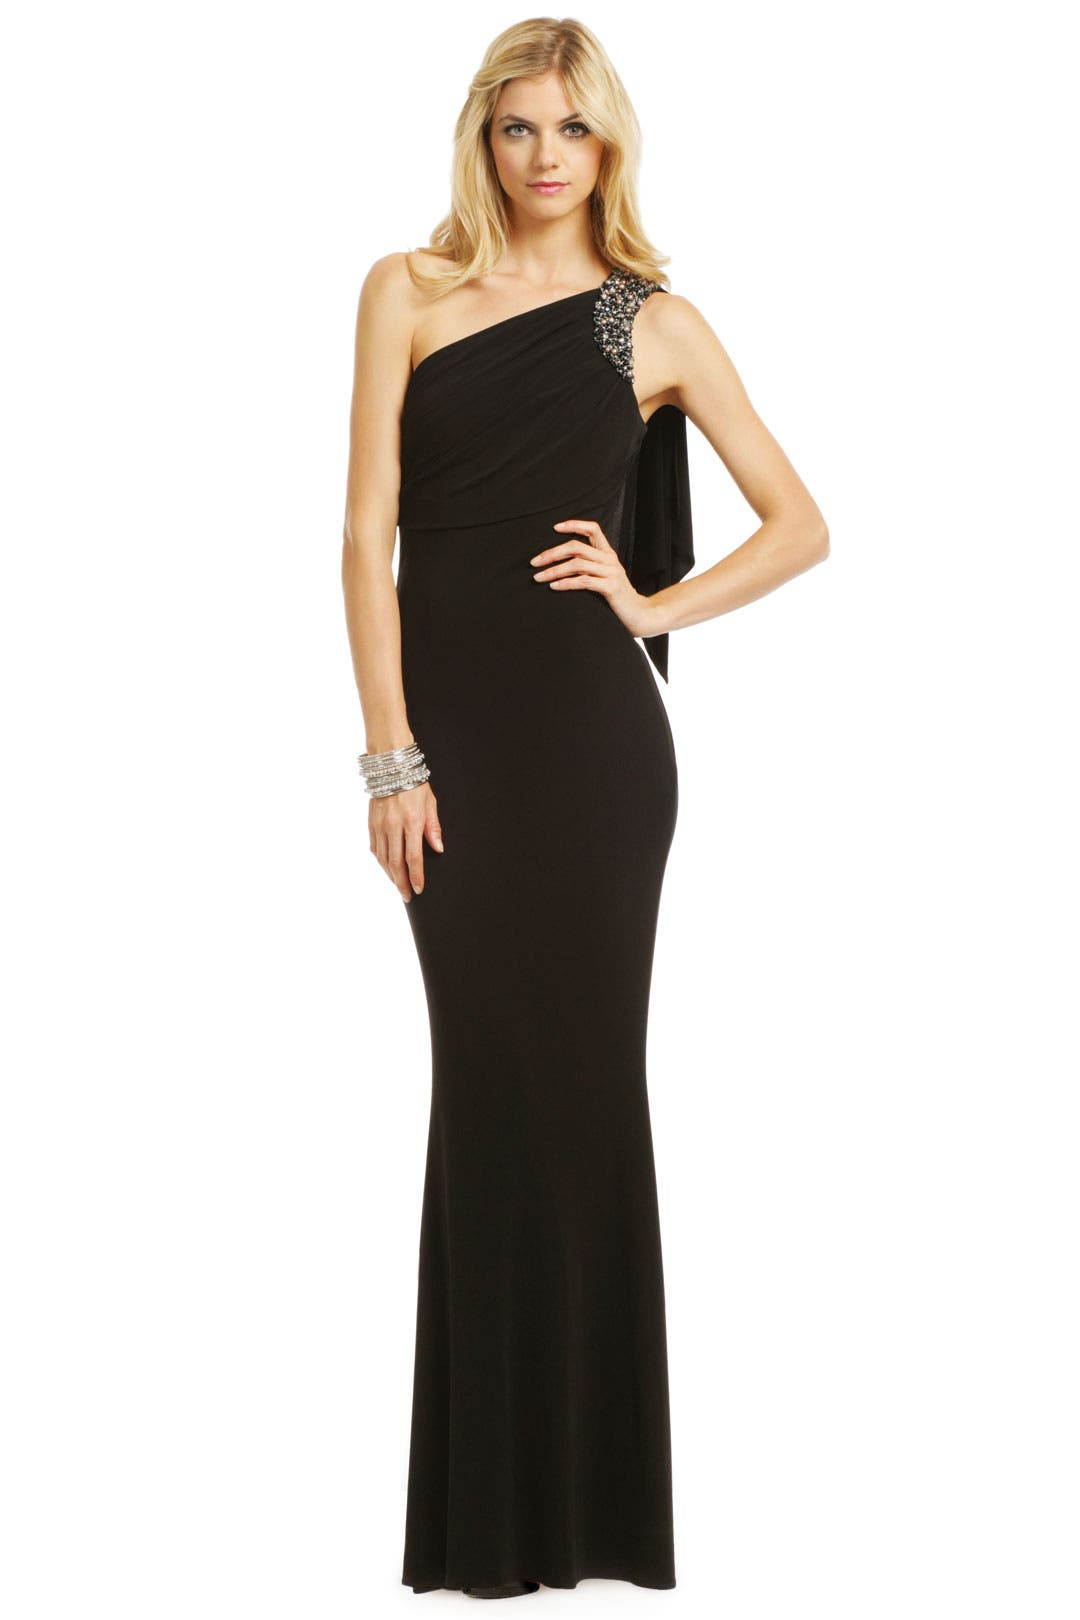 Miss Mysterious Gown by Badgley Mischka